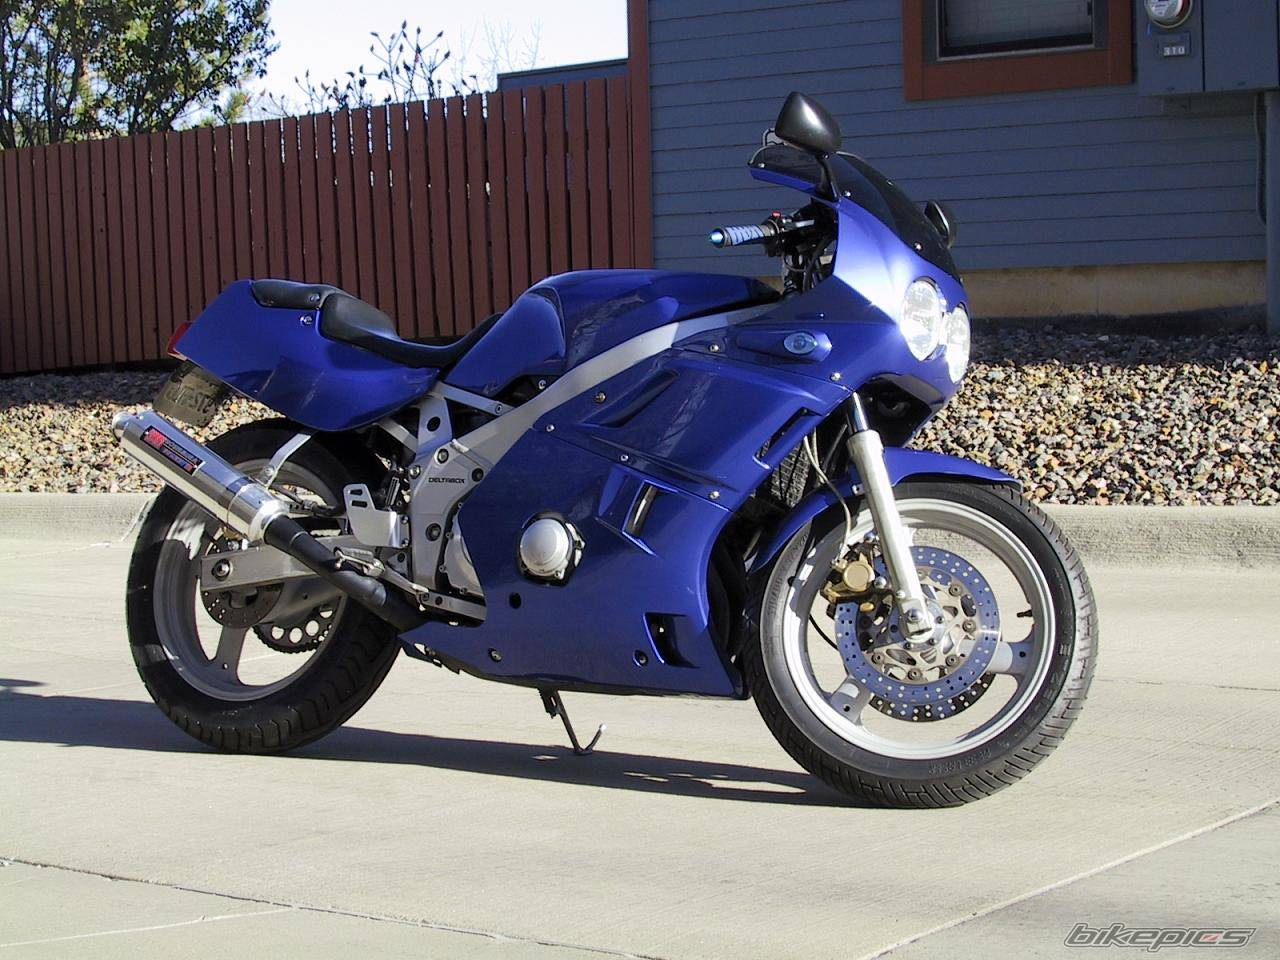 1988 YAMAHA FZR 600 | Picture 568556 motorcycle photo